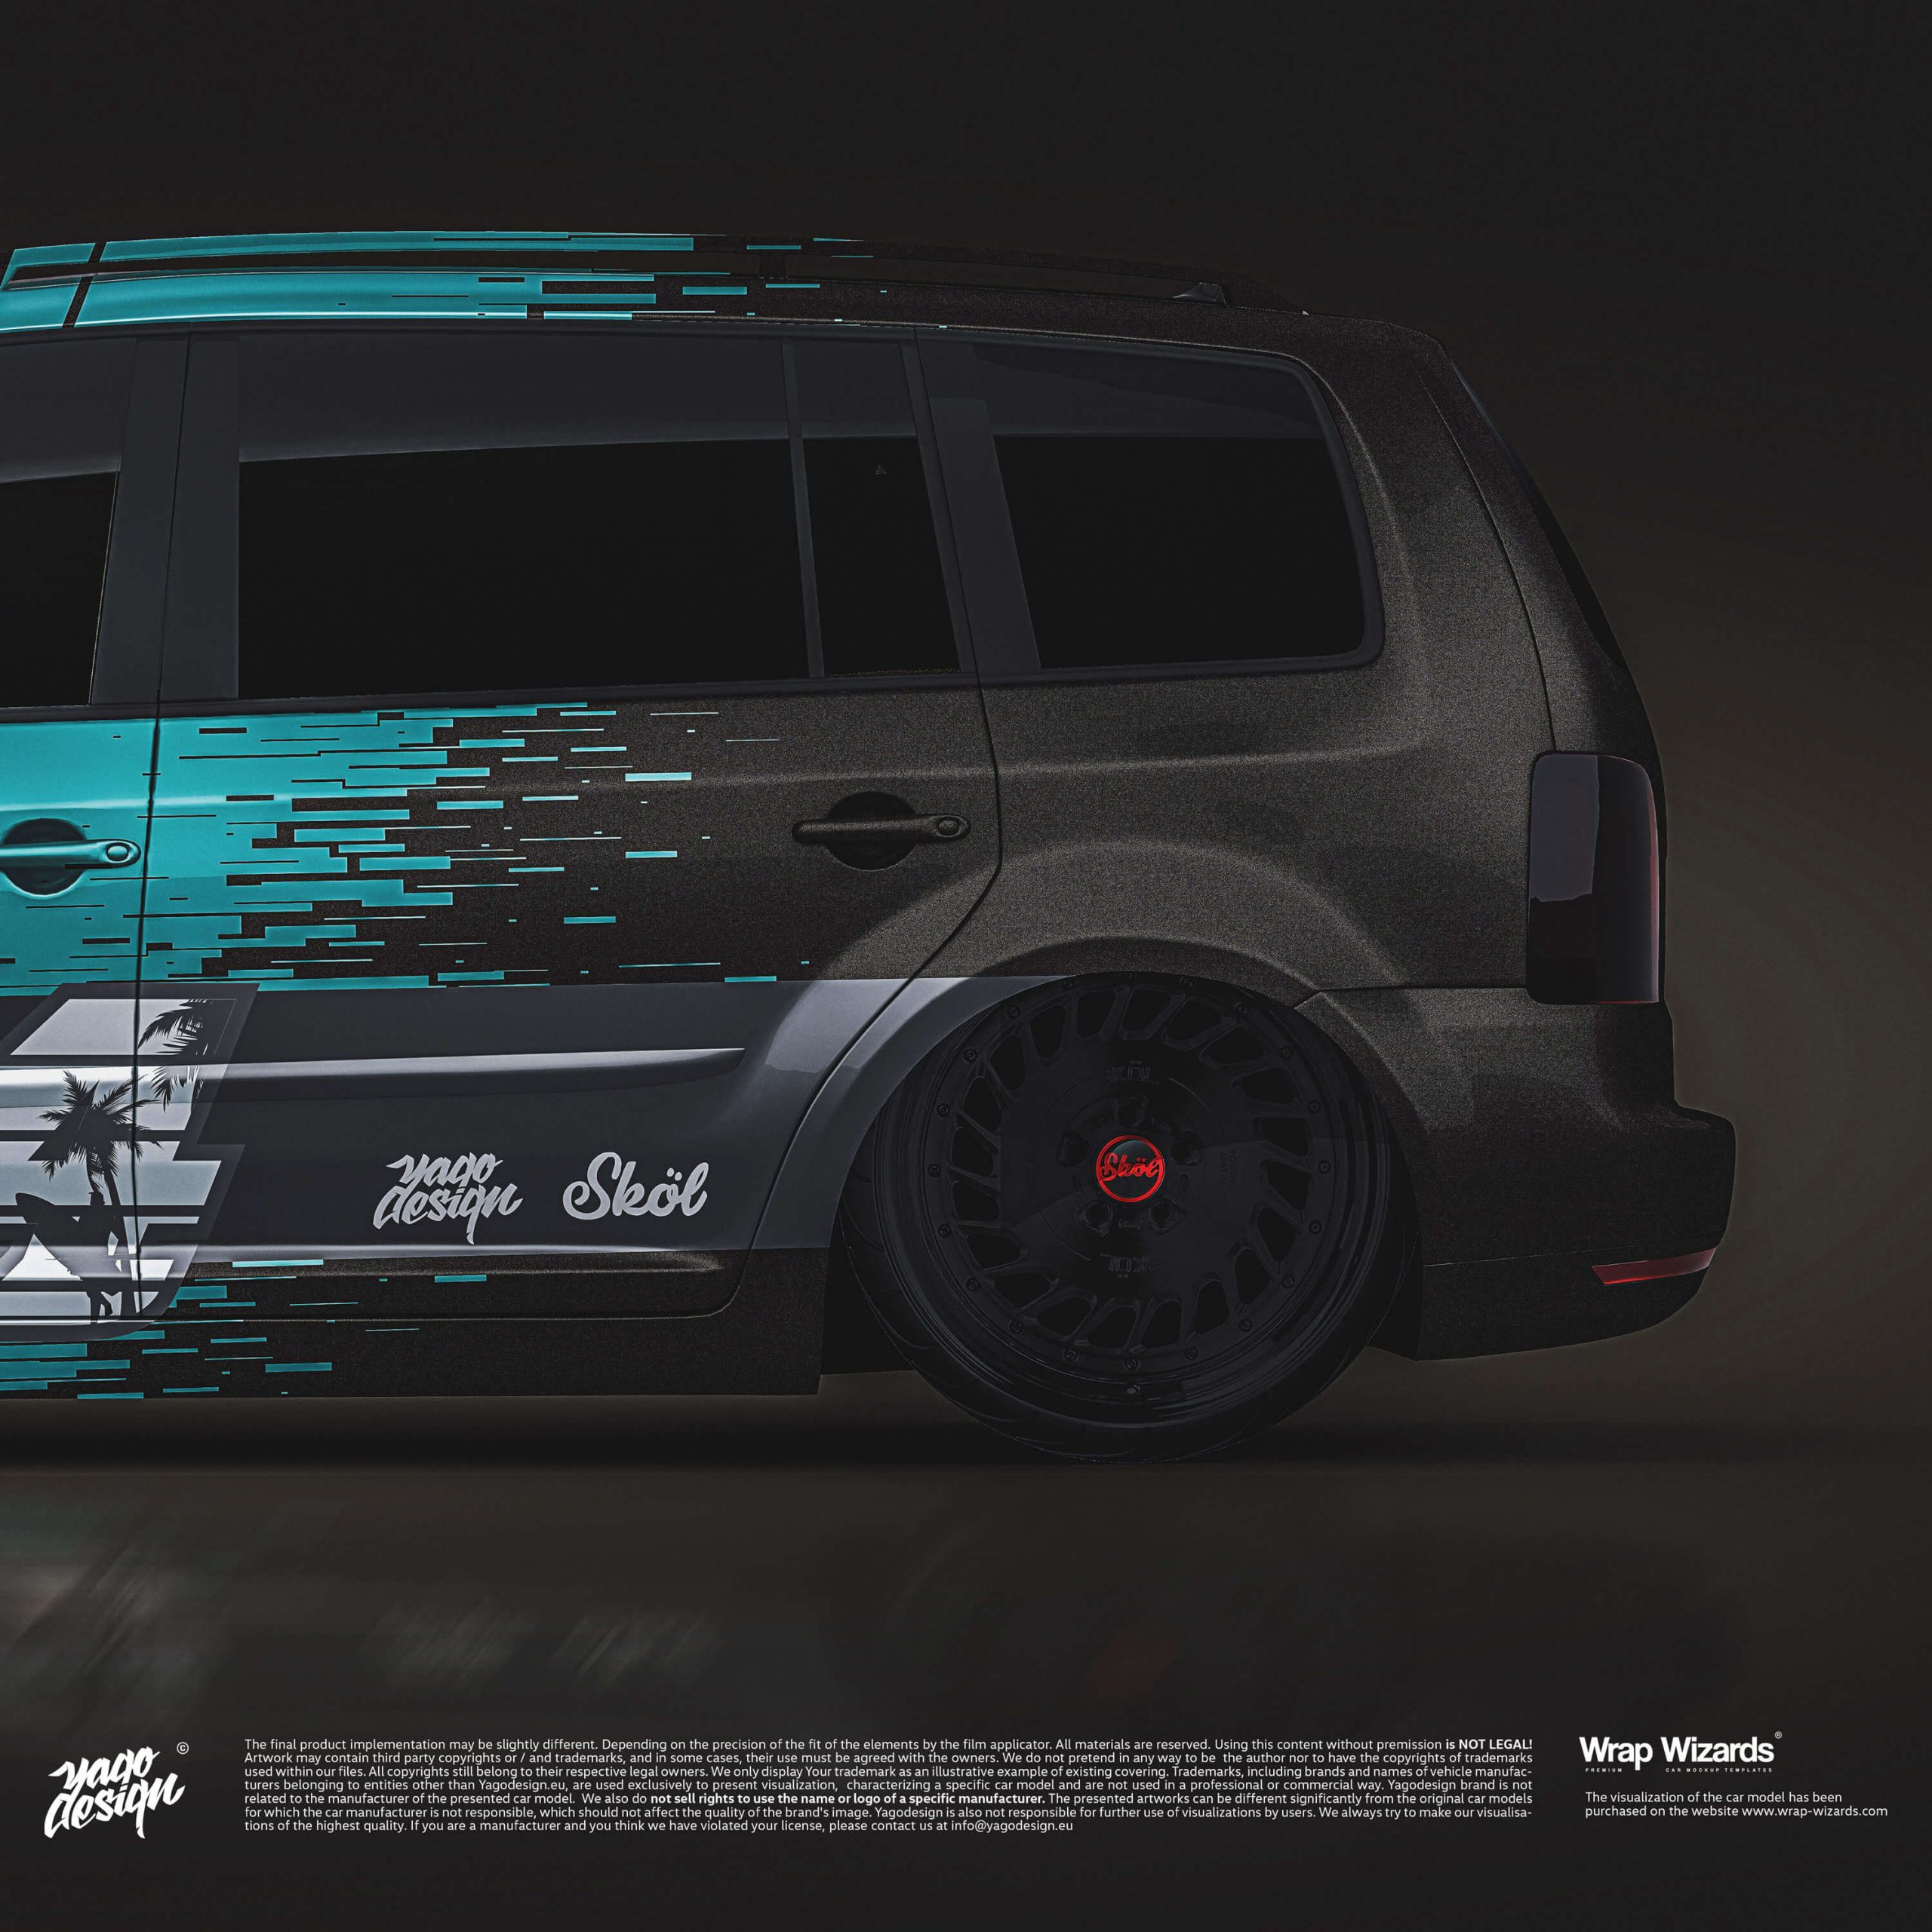 VW-Touran-2007-by-Yagodesign-2020-Car-Wrapping-2